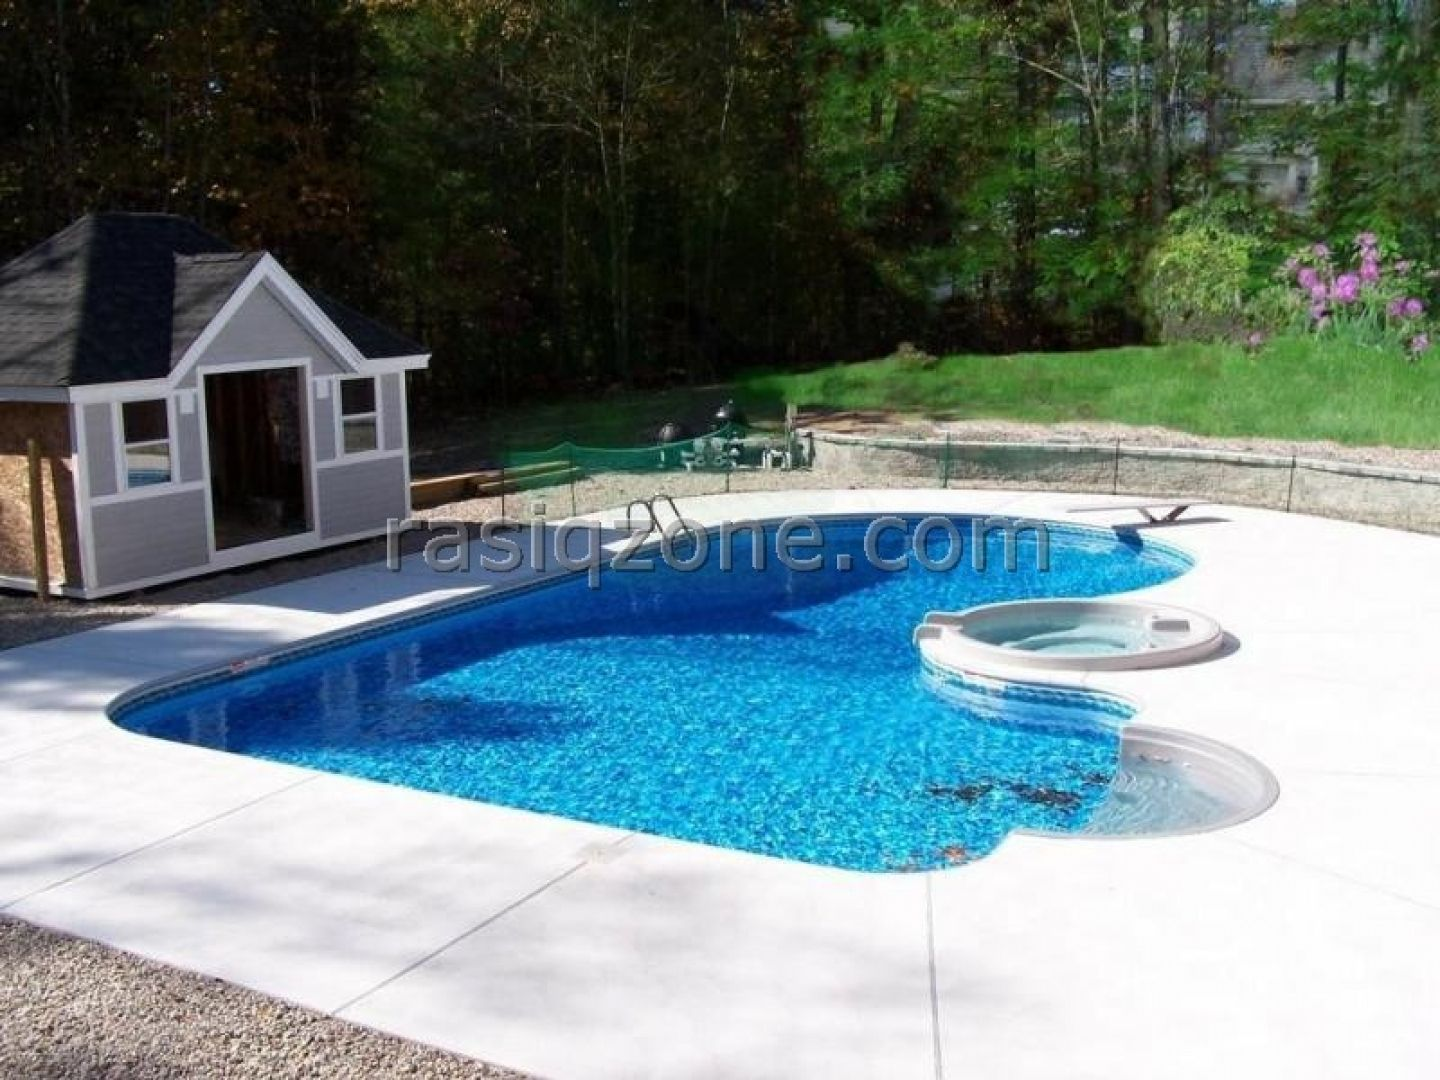 Merveilleux Astonishing Swimming Pool Designs Pictures Gallery : Endearing Small  Inground Pools Design With Rustic Stone Floor Pool And Beautiful Small .